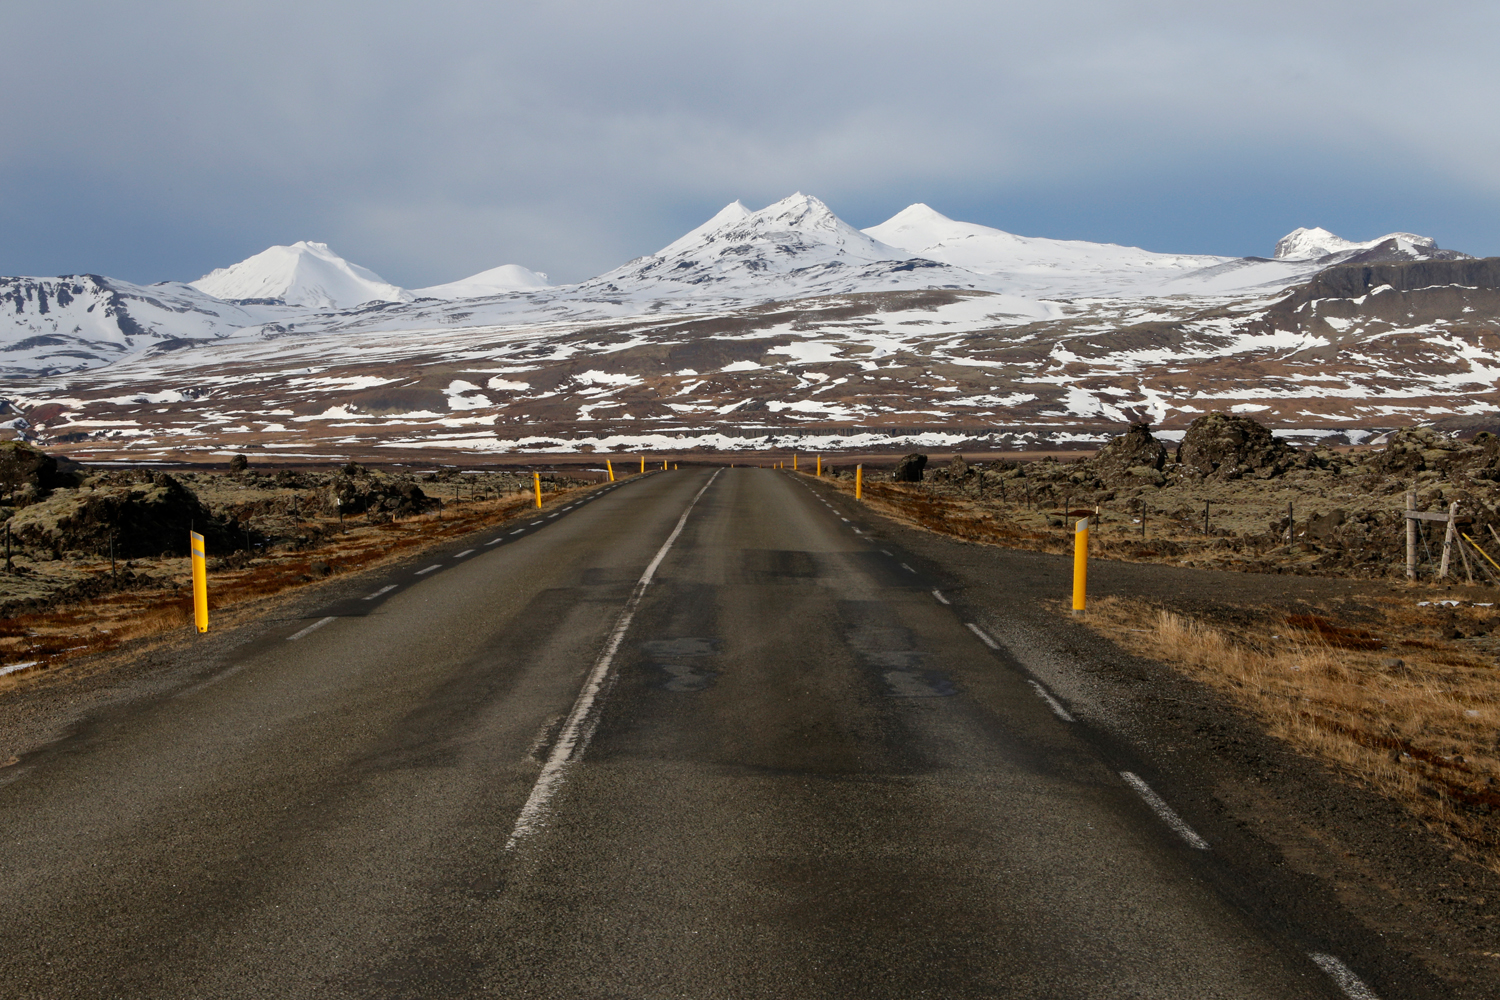 An empty street stretches from the foreground to the horizon in an almost straight line, leading through fields of volcanic rocks with distinctive green lichens growing on the surface towards a jagged mountain chain that is covered in snow.